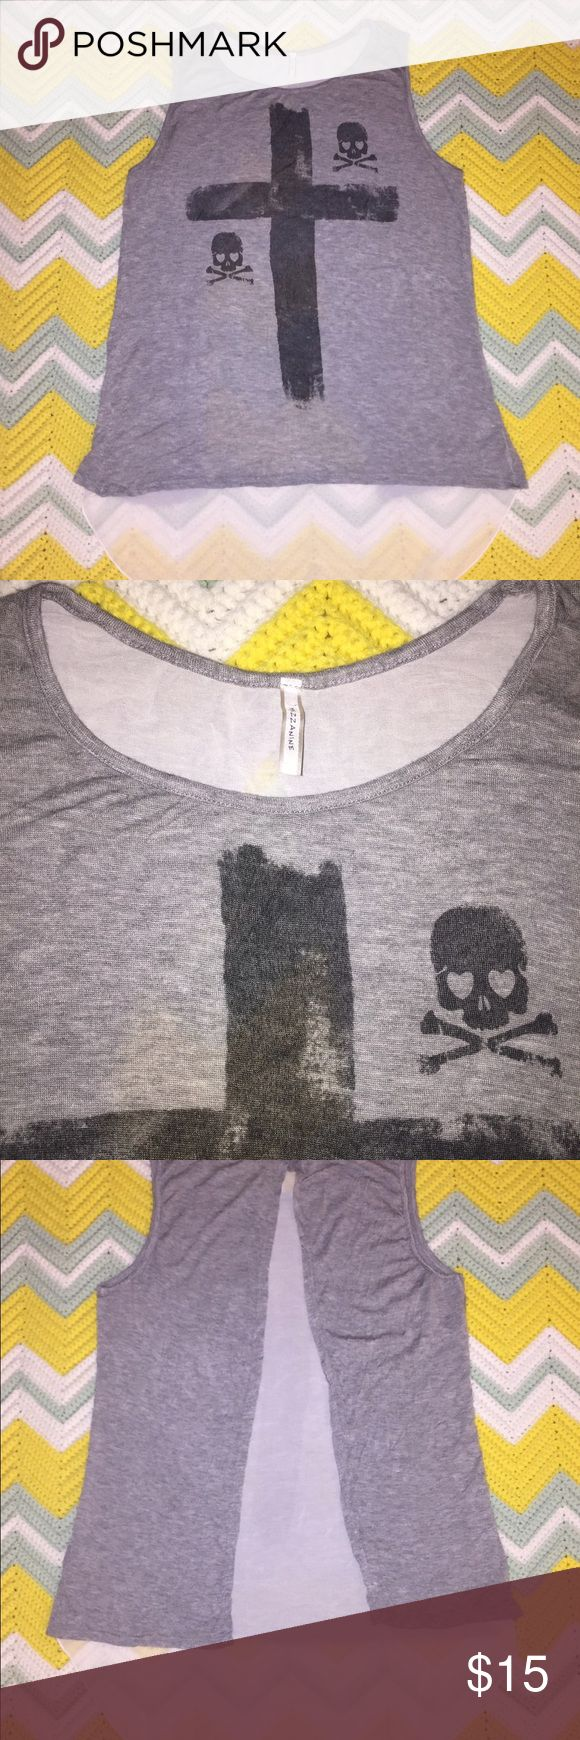 """Hi Low Skull 💀 💀 cross ✝️ semi-sheer top Item Condition: Excellent condition! Gently used with no flaws. No visible holes, stains, or tears! Color: gray with white sheer back Size: Large Measurements: (All measurements taken with garment lying flat are approximate) Chest (pit to pit): 19"""" Length (top of collar to hem): 26"""" front / 32.5"""" back All items are from a smoke free and pet free home Tops Blouses"""